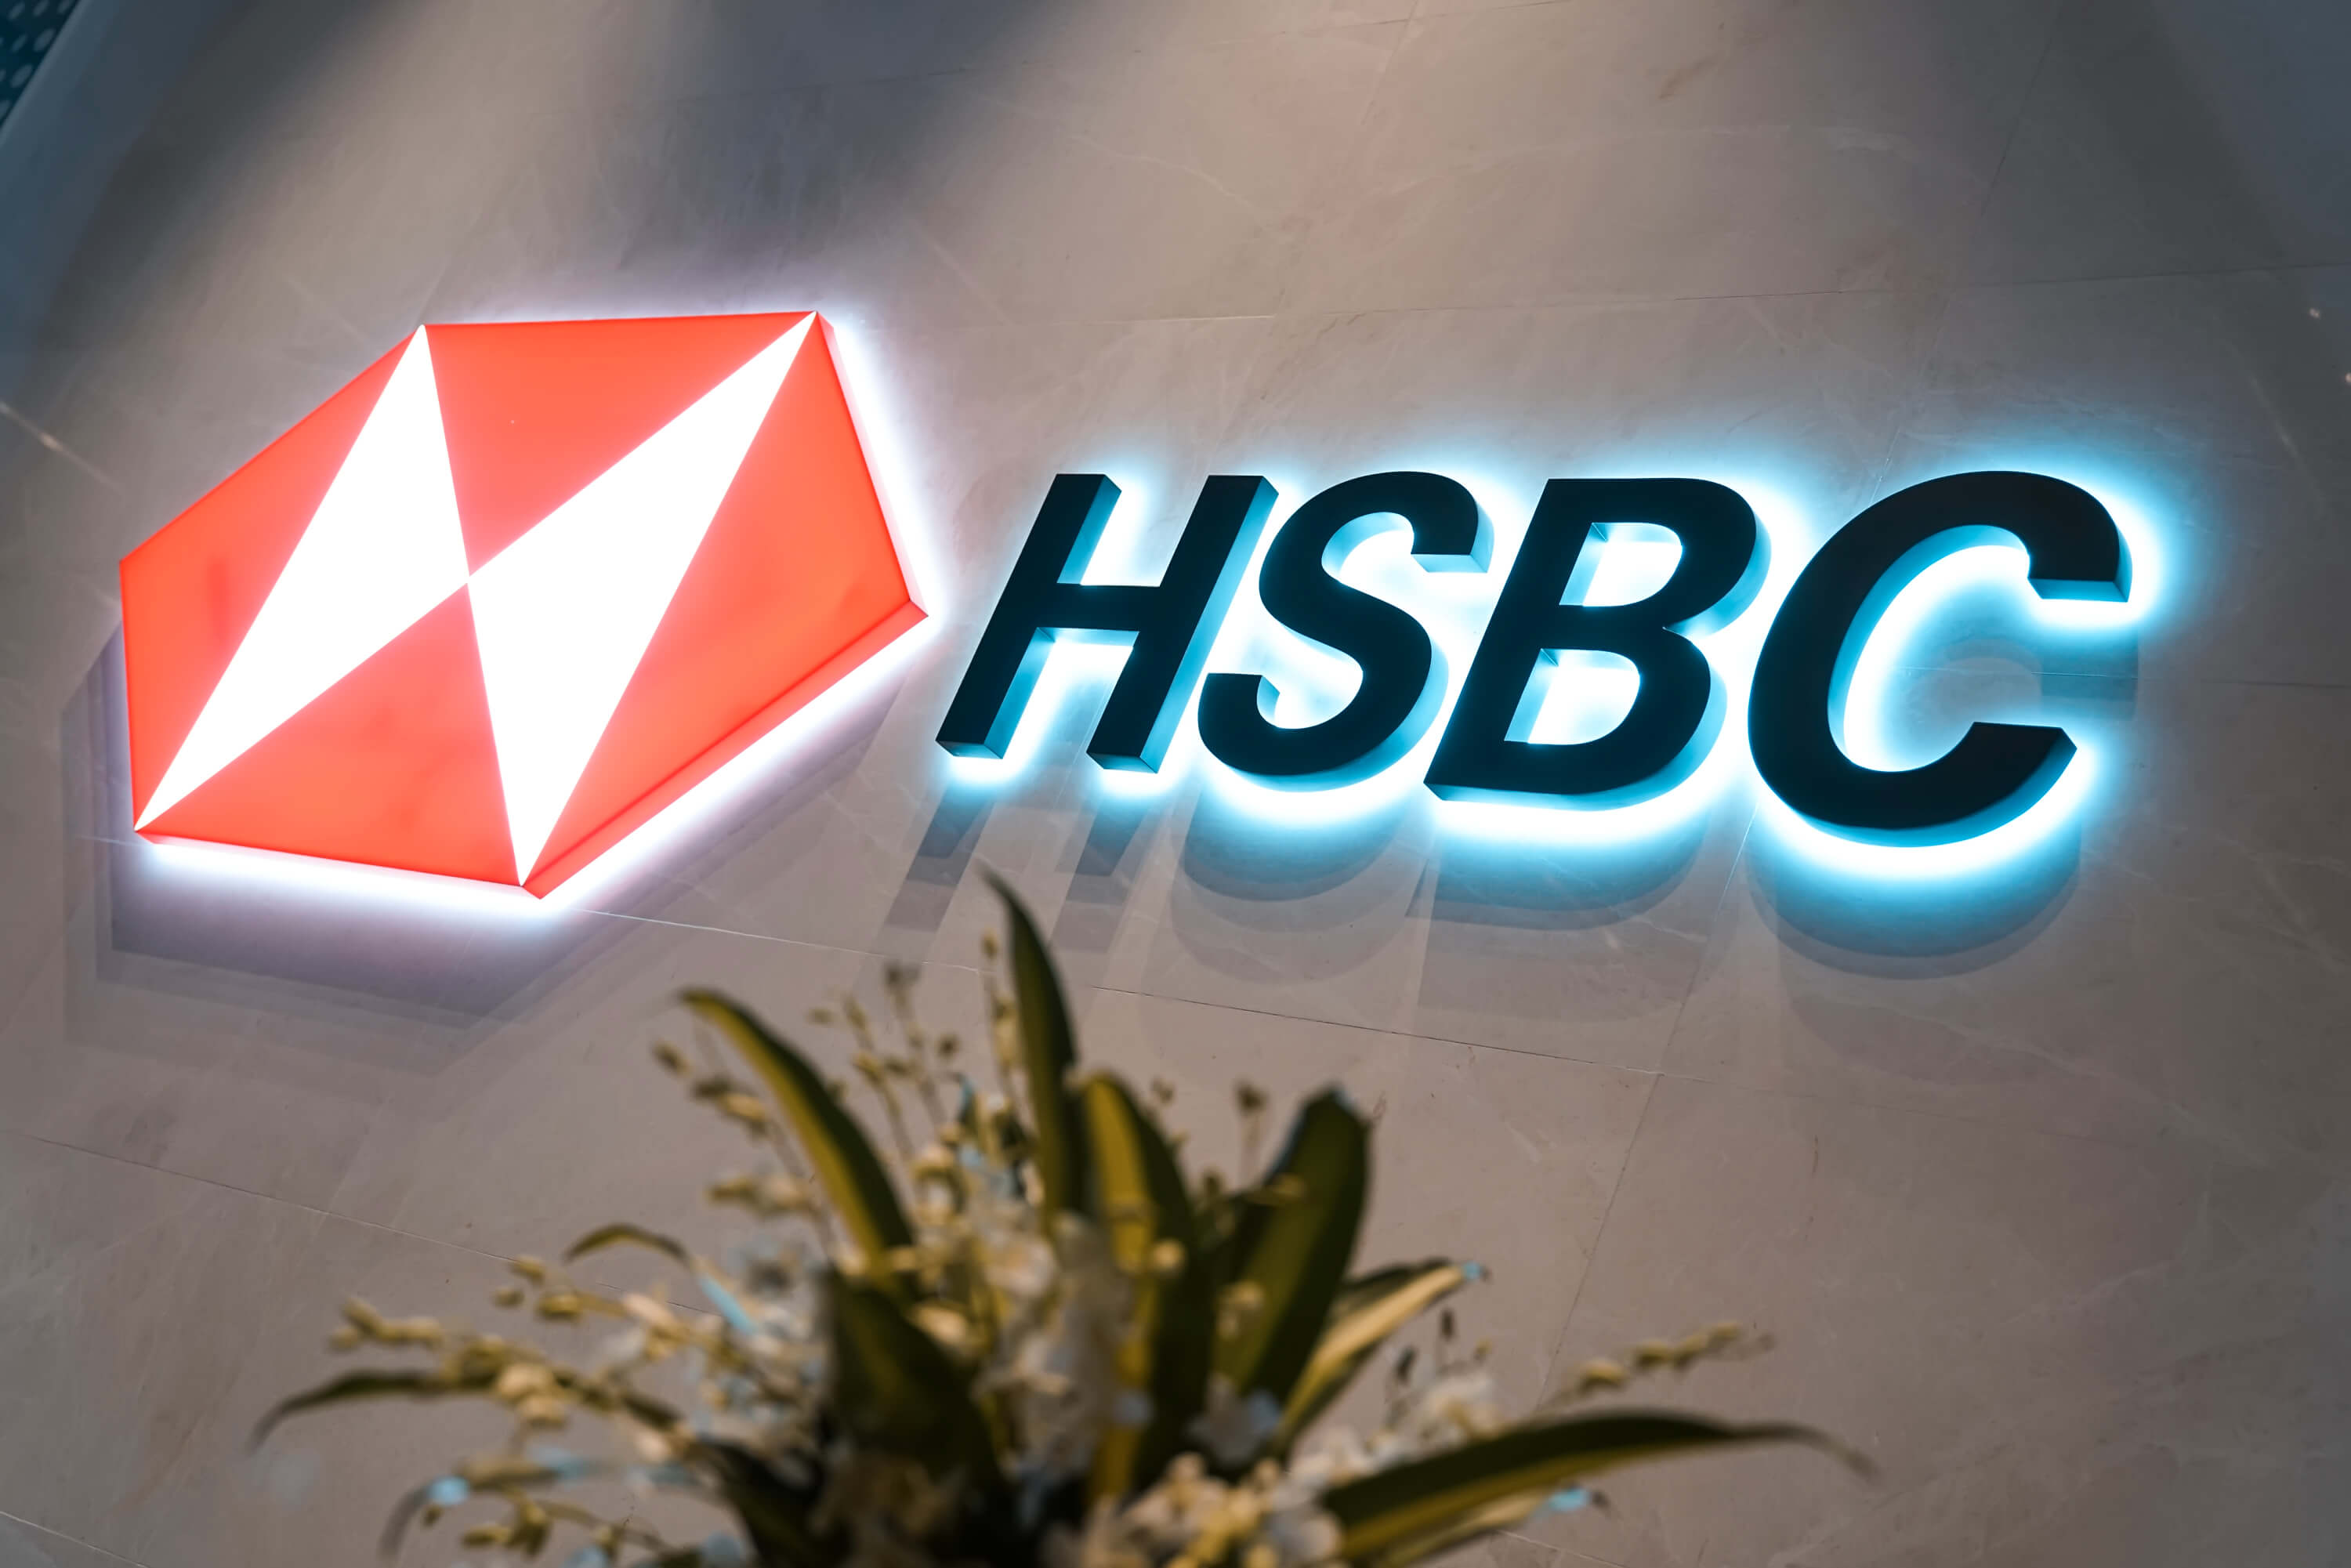 It's too soon to say whether this will lead to serious cost savings HSBC